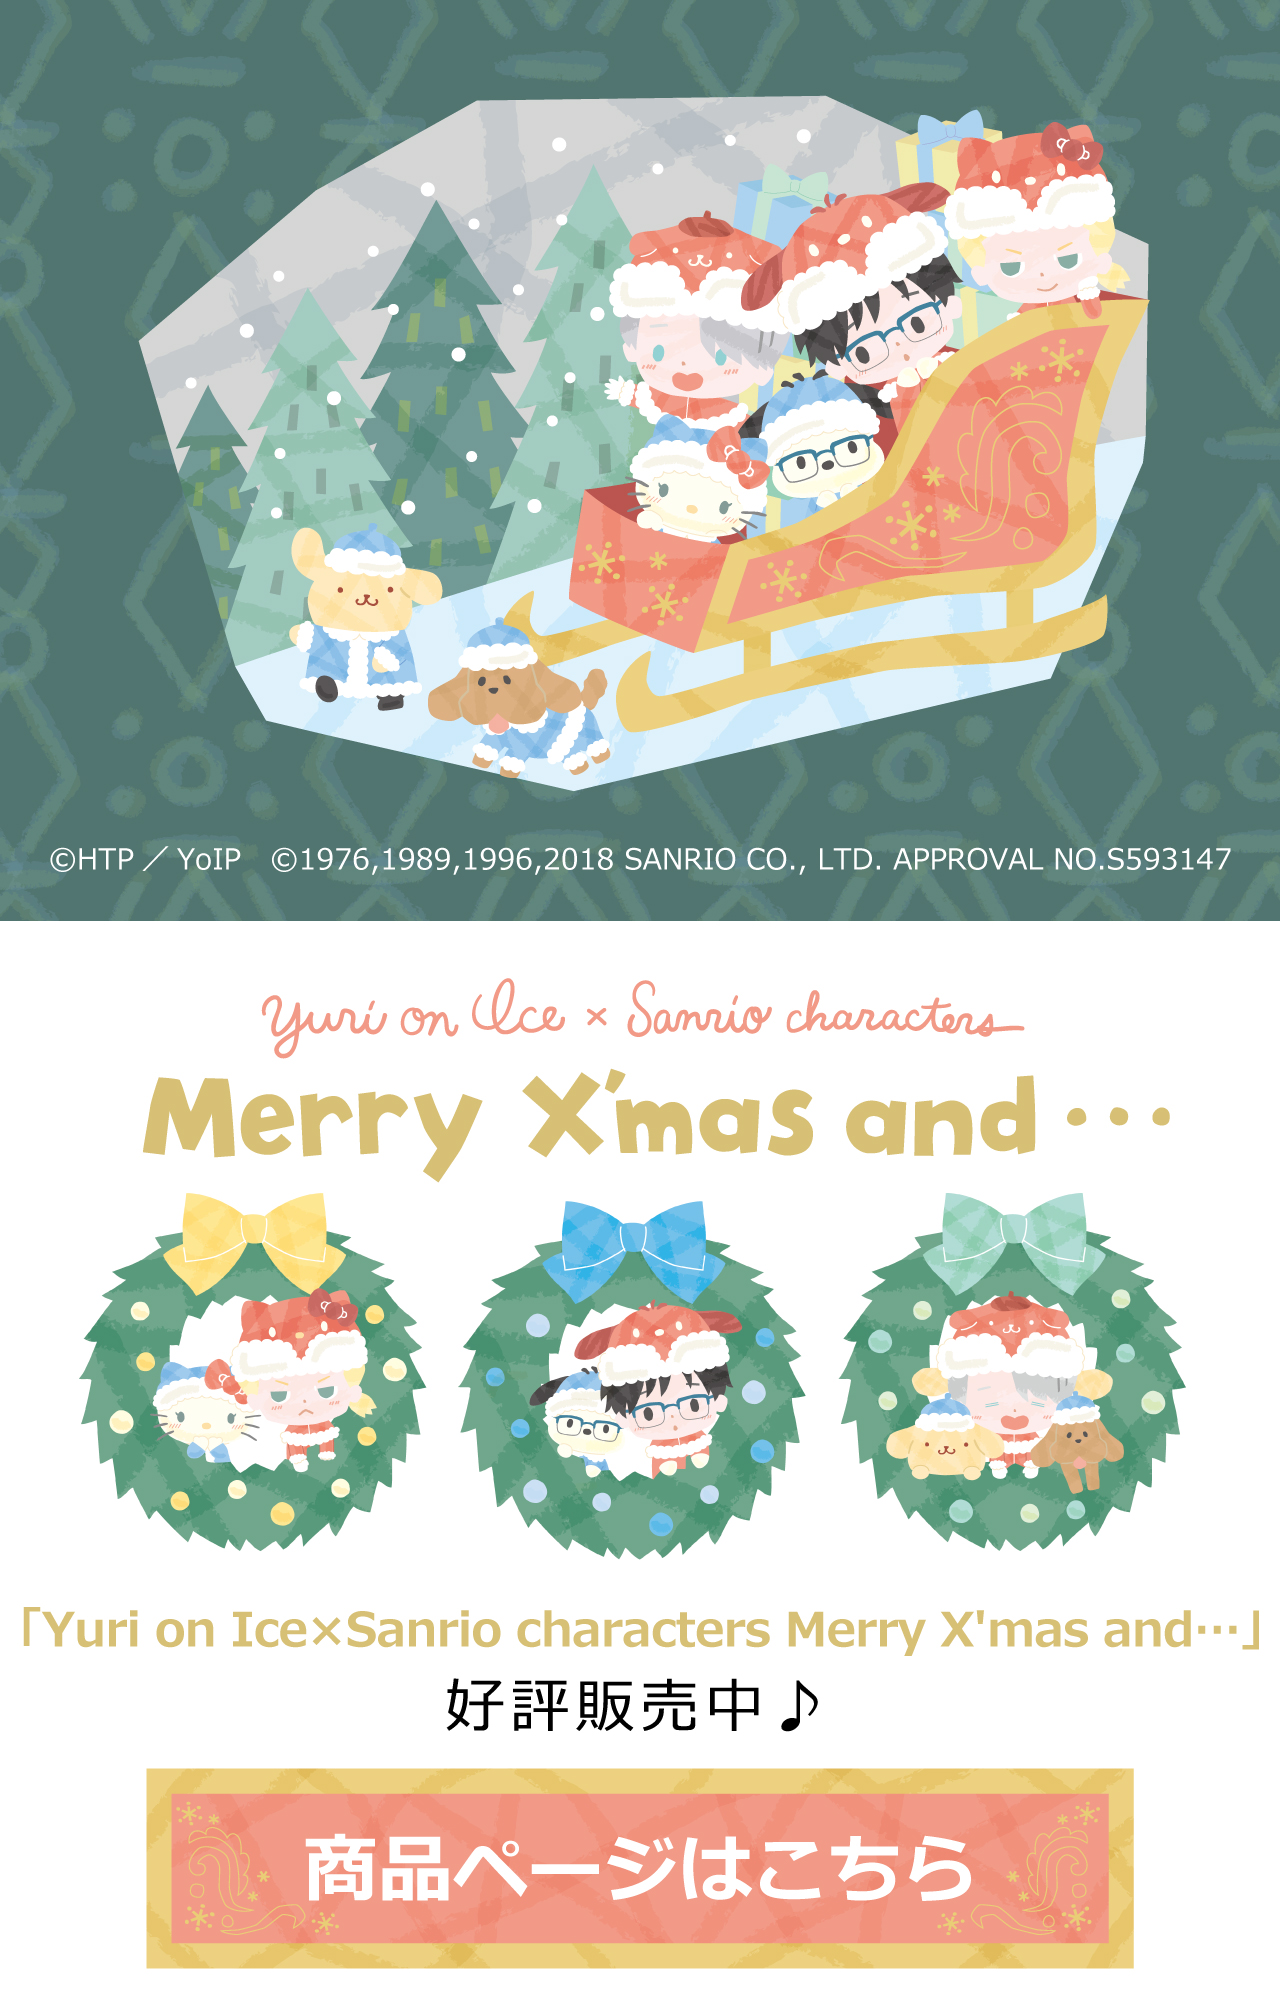 Yuri on ICE×Sanrio characters Merry X'mas and...